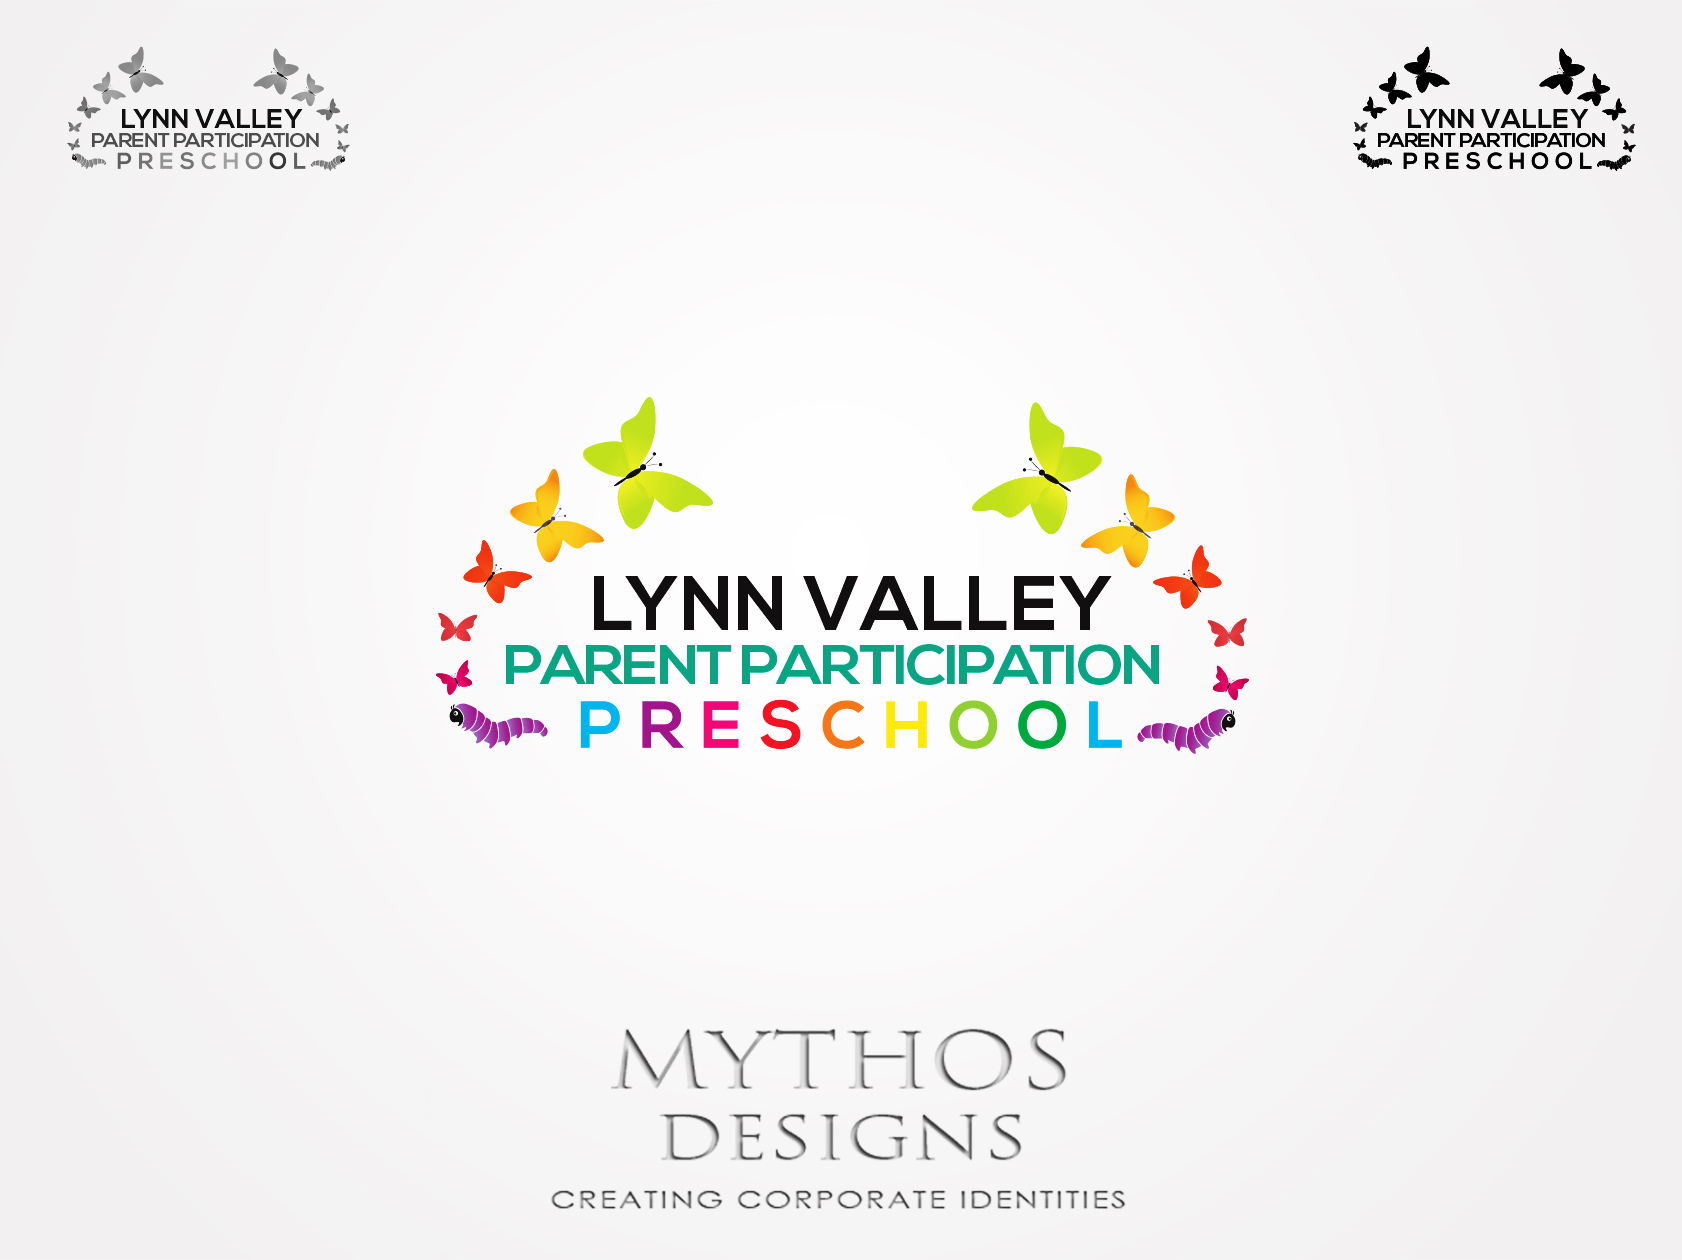 Logo Design by Mythos Designs - Entry No. 96 in the Logo Design Contest New Logo Design for Lynn Valley Parent Participation Preschool.